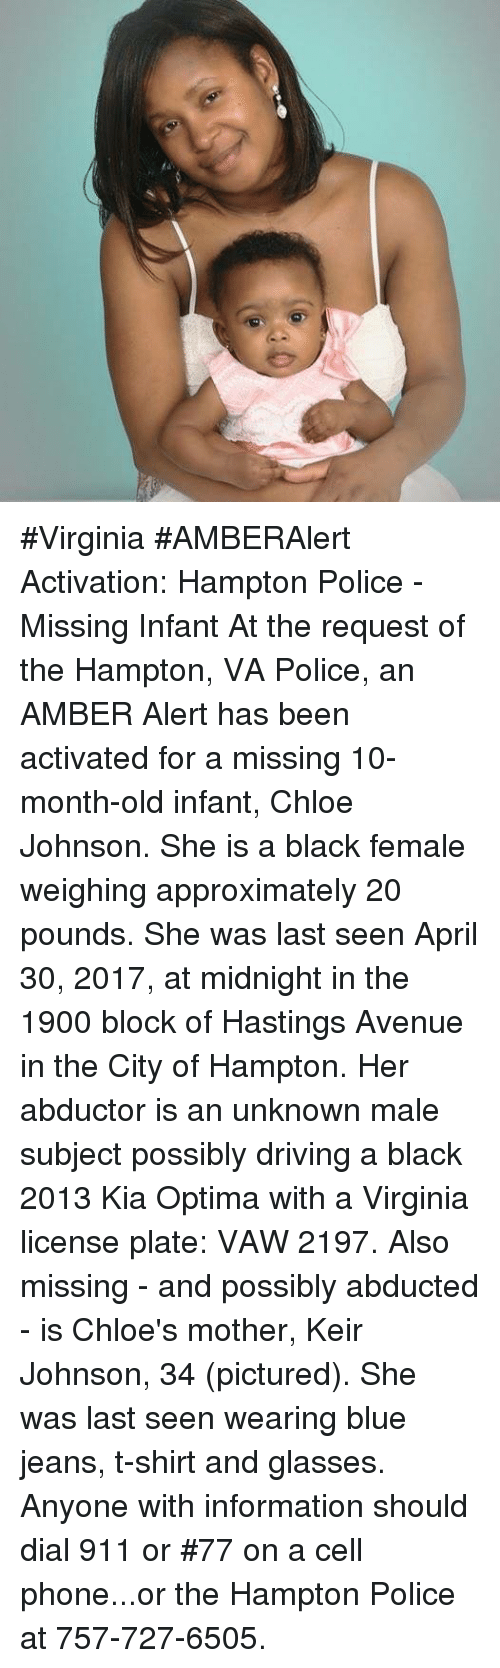 Kia Optima: #Virginia #AMBERAlert Activation: Hampton Police - Missing Infant  At the request of the Hampton, VA Police, an AMBER Alert has been activated for a missing 10-month-old infant, Chloe Johnson. She is a black female weighing approximately 20 pounds.   She was last seen April 30, 2017, at midnight in the 1900 block of Hastings Avenue in the City of Hampton.   Her abductor is an unknown male subject possibly driving a black 2013 Kia Optima with a Virginia license plate: VAW 2197.  Also missing - and possibly abducted - is Chloe's mother, Keir Johnson, 34 (pictured). She was last seen wearing blue jeans, t-shirt and glasses.   Anyone with information should dial 911 or #77 on a cell phone...or the Hampton Police at 757-727-6505.